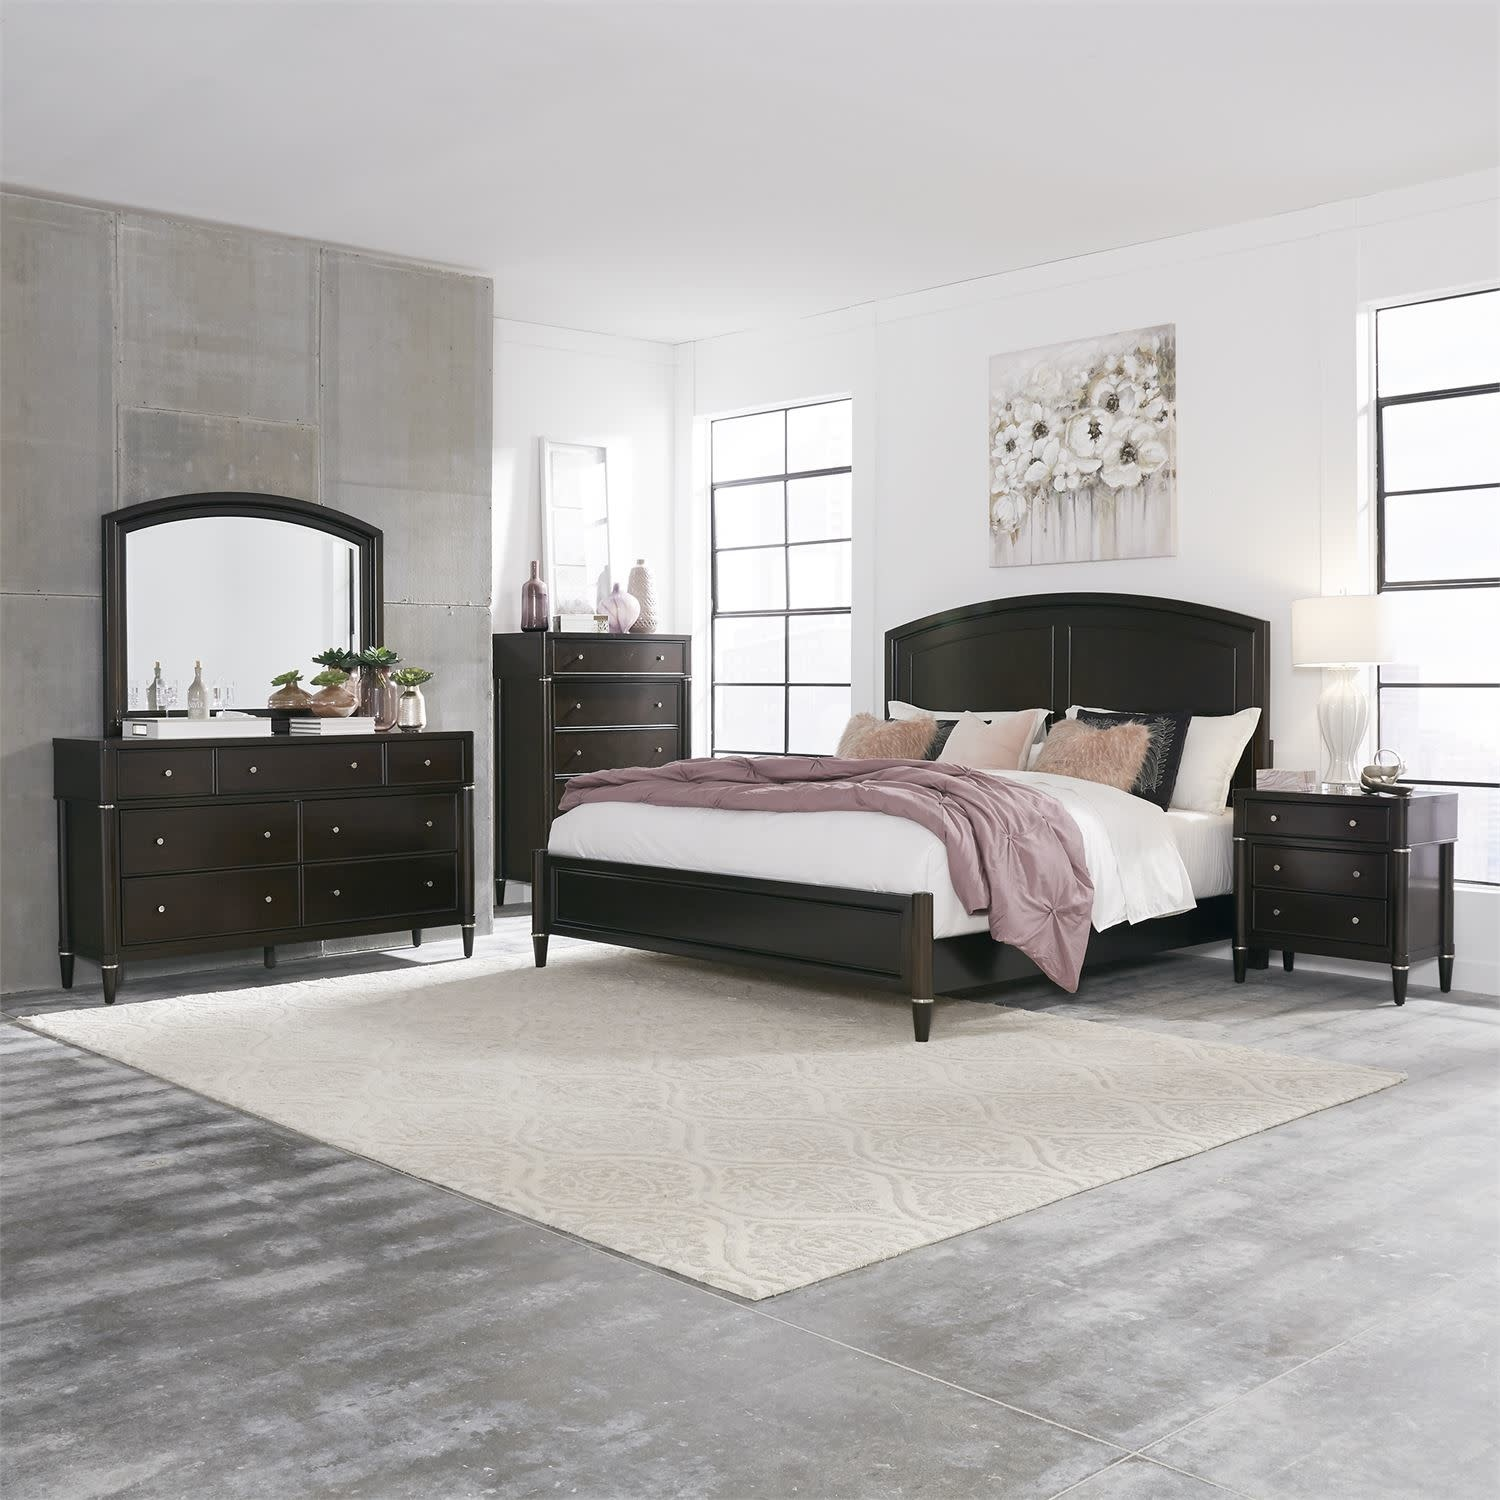 Essex 425 Br Qpbdmcn 7 Pc Queen Panel Bedroom Set By Liberty Furniture Wholesale Furniture Mattress